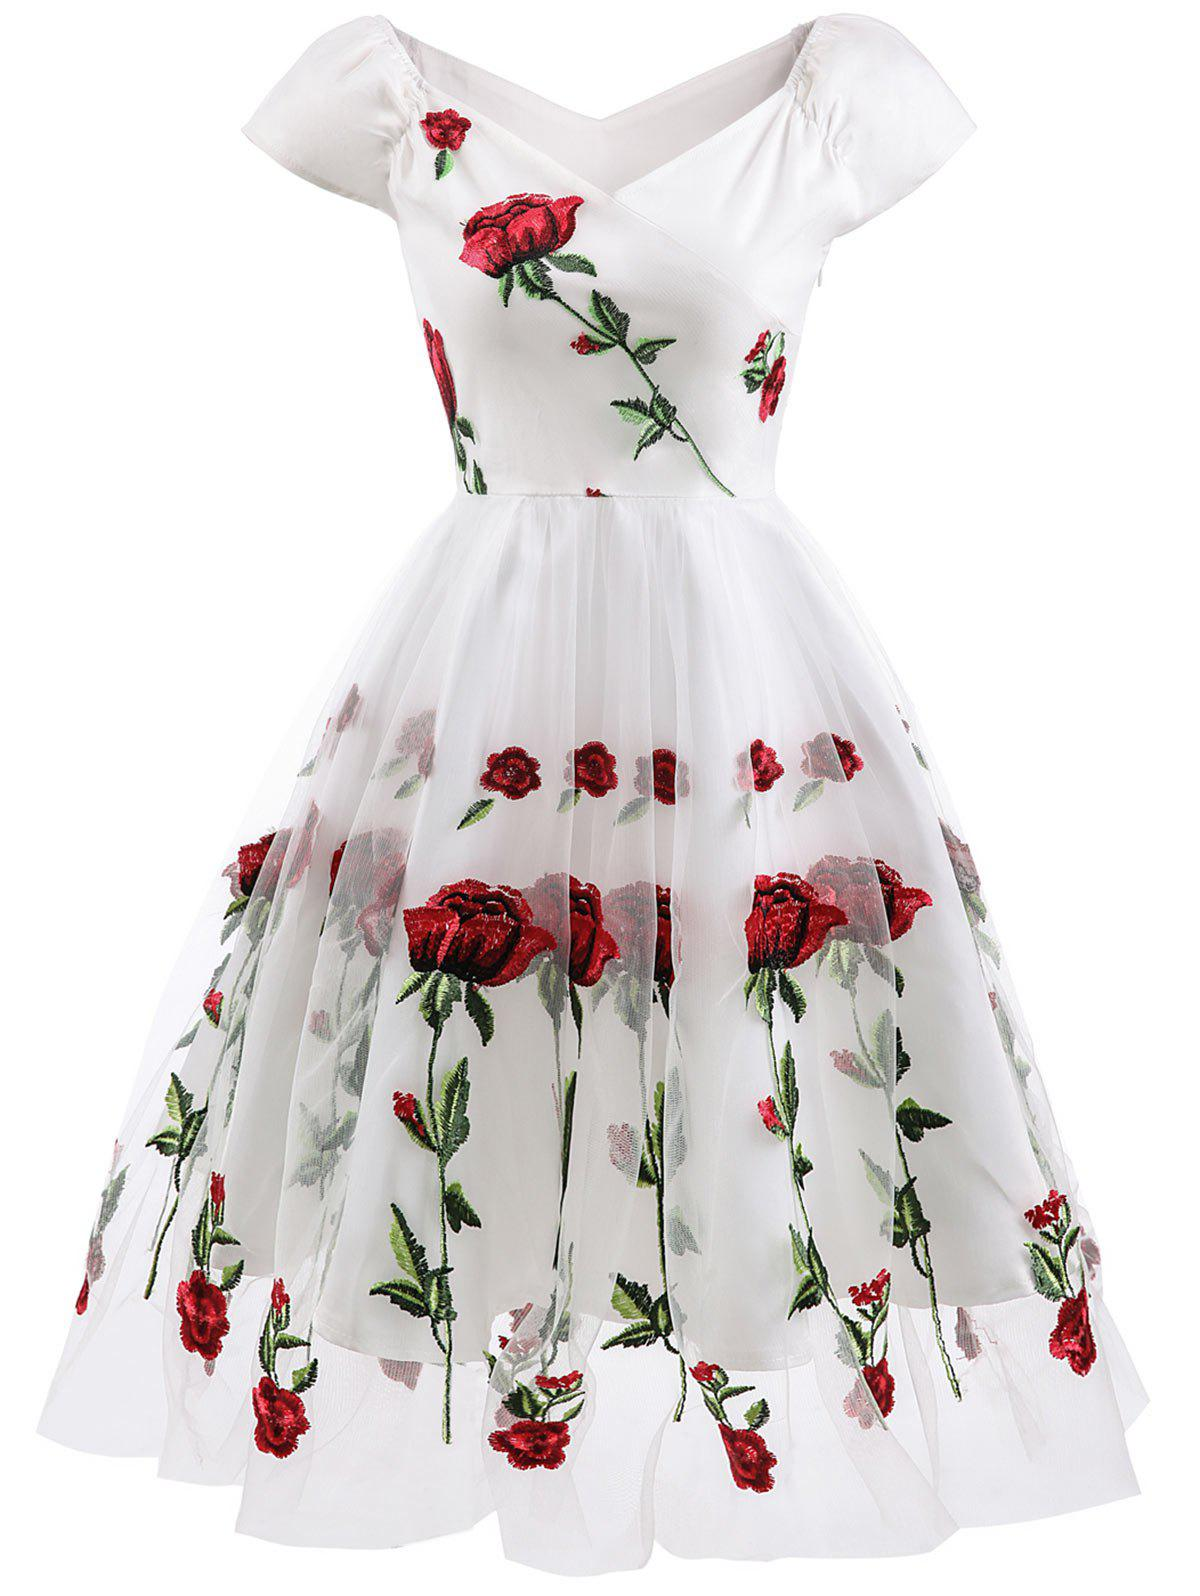 Unique Floral Embroidered Fit and Flare Prom Dress